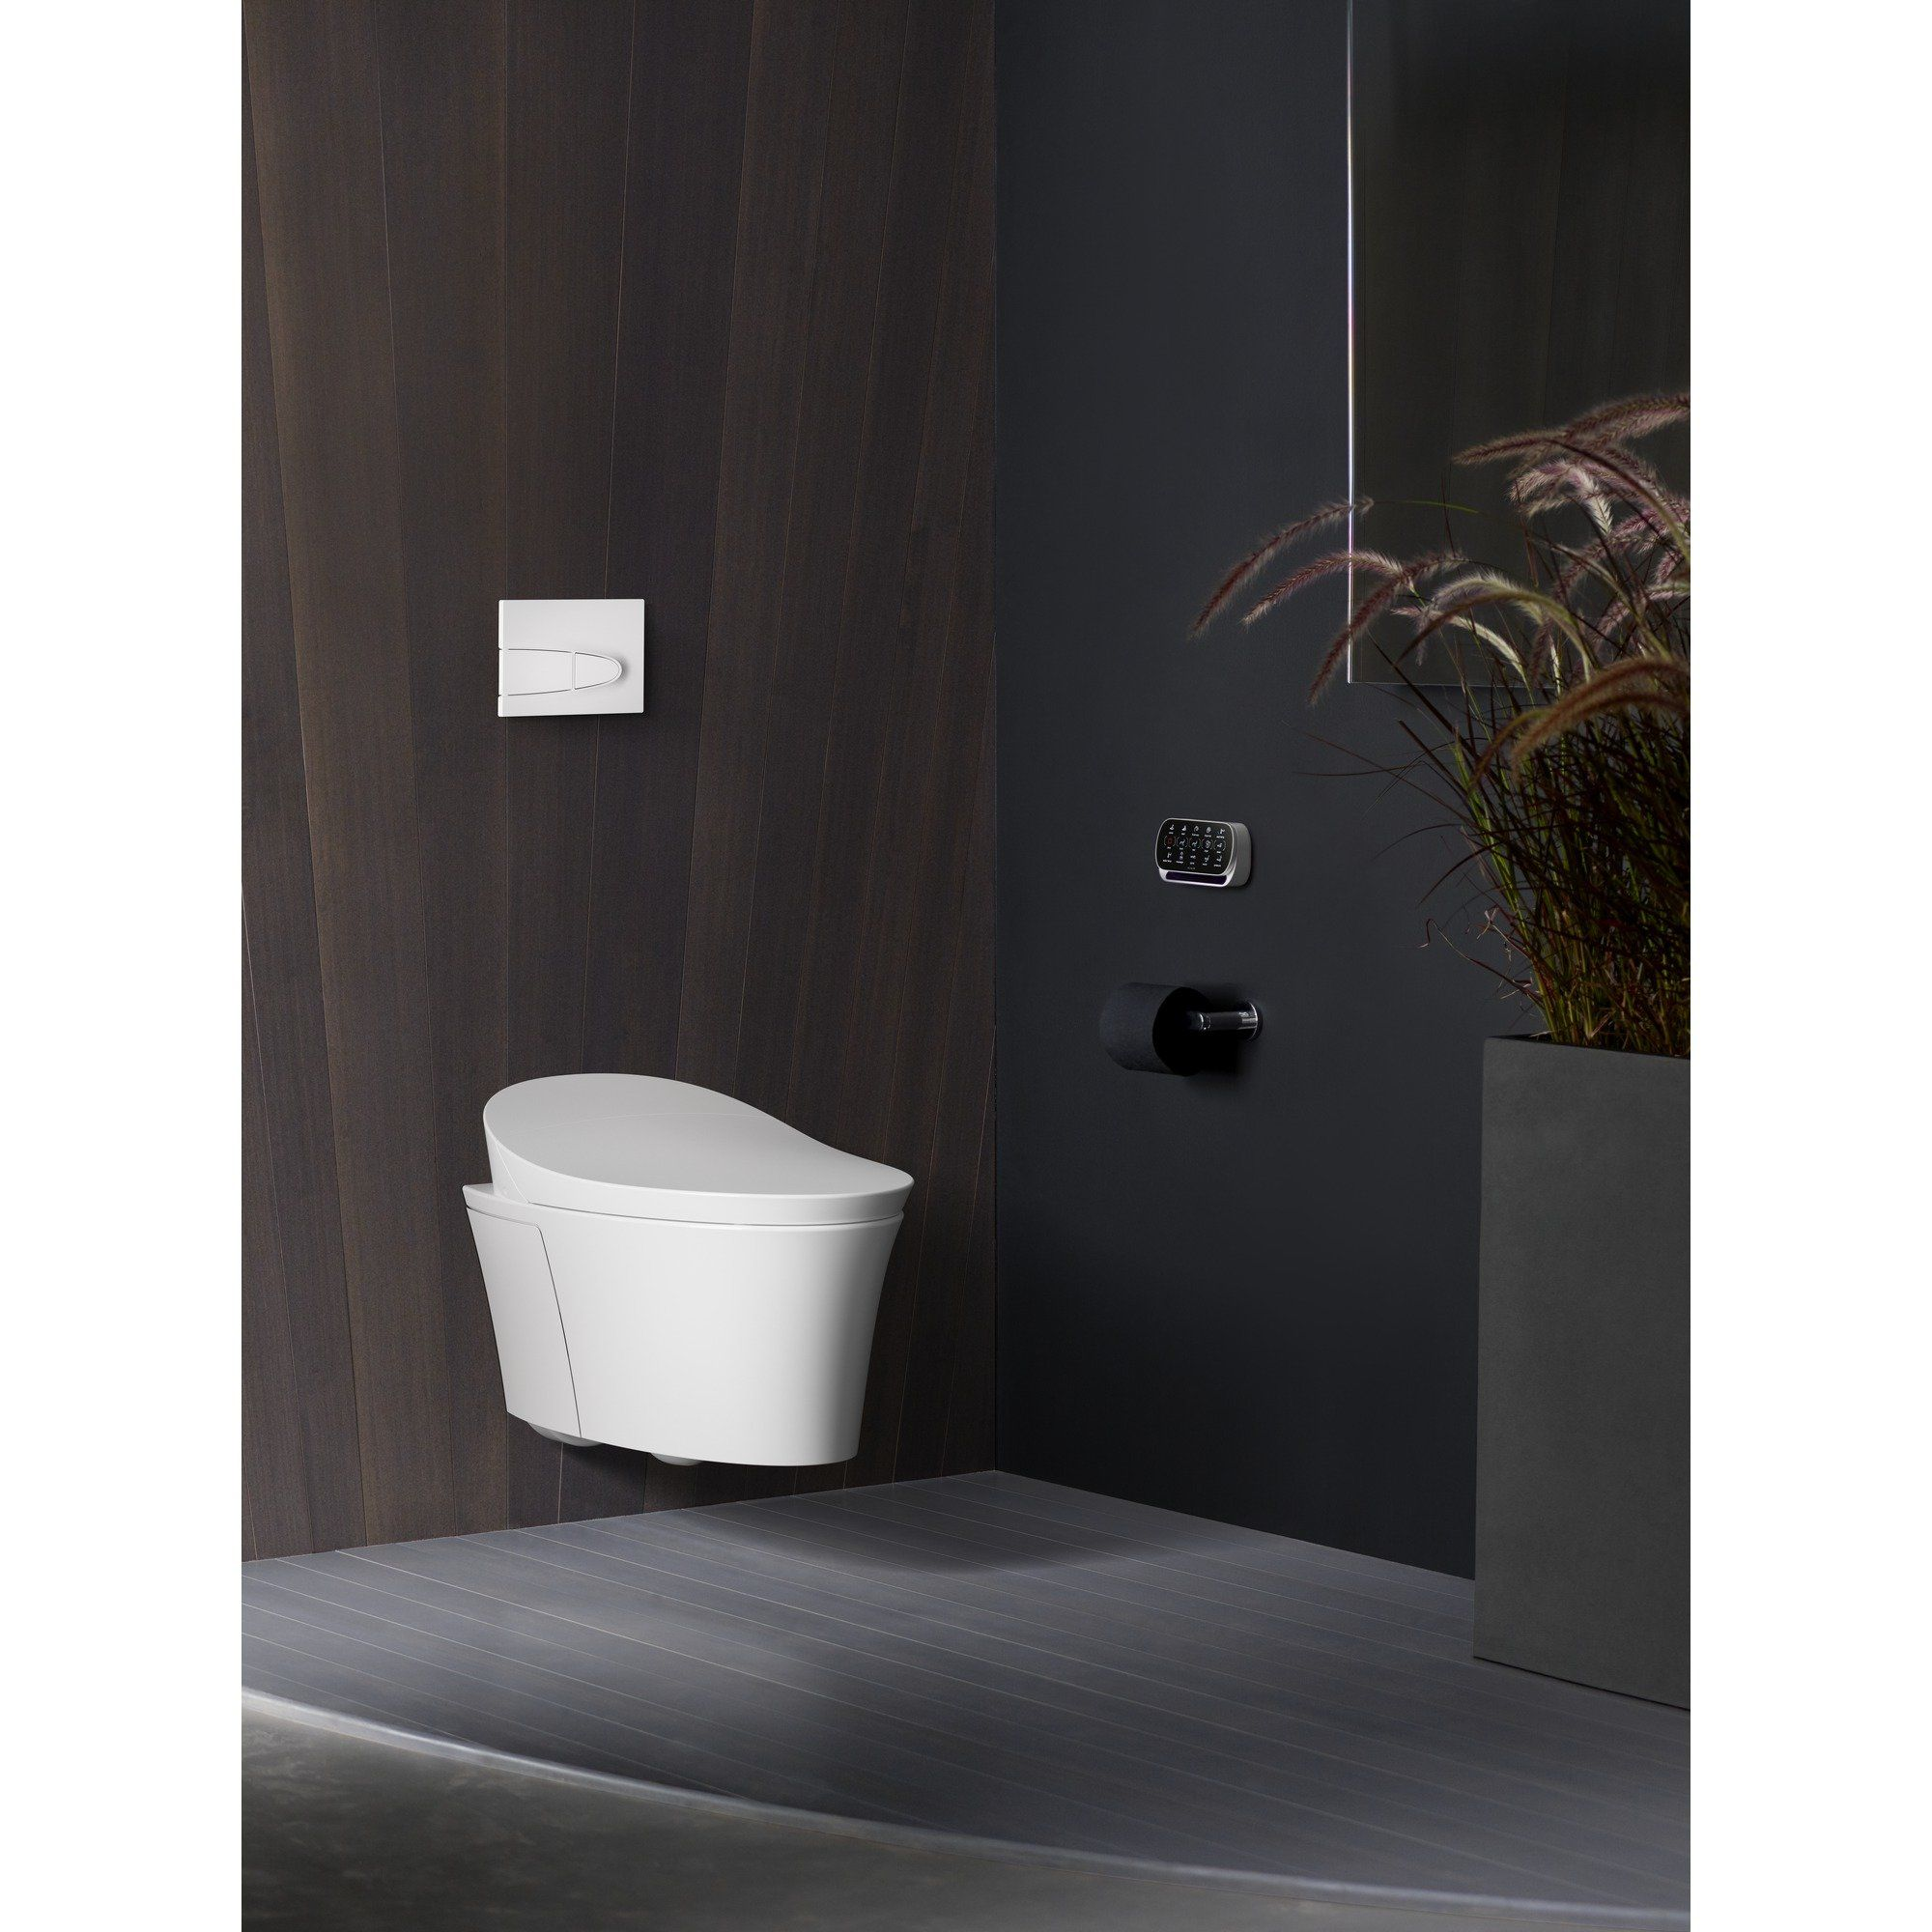 Kohler Veil Intelligent Wall Hung Toilet Here It Is In A Wall Hung Application Pretty Cool Imagine How Easy It Is T Wall Hung Toilet Bathroom Trends Kohler